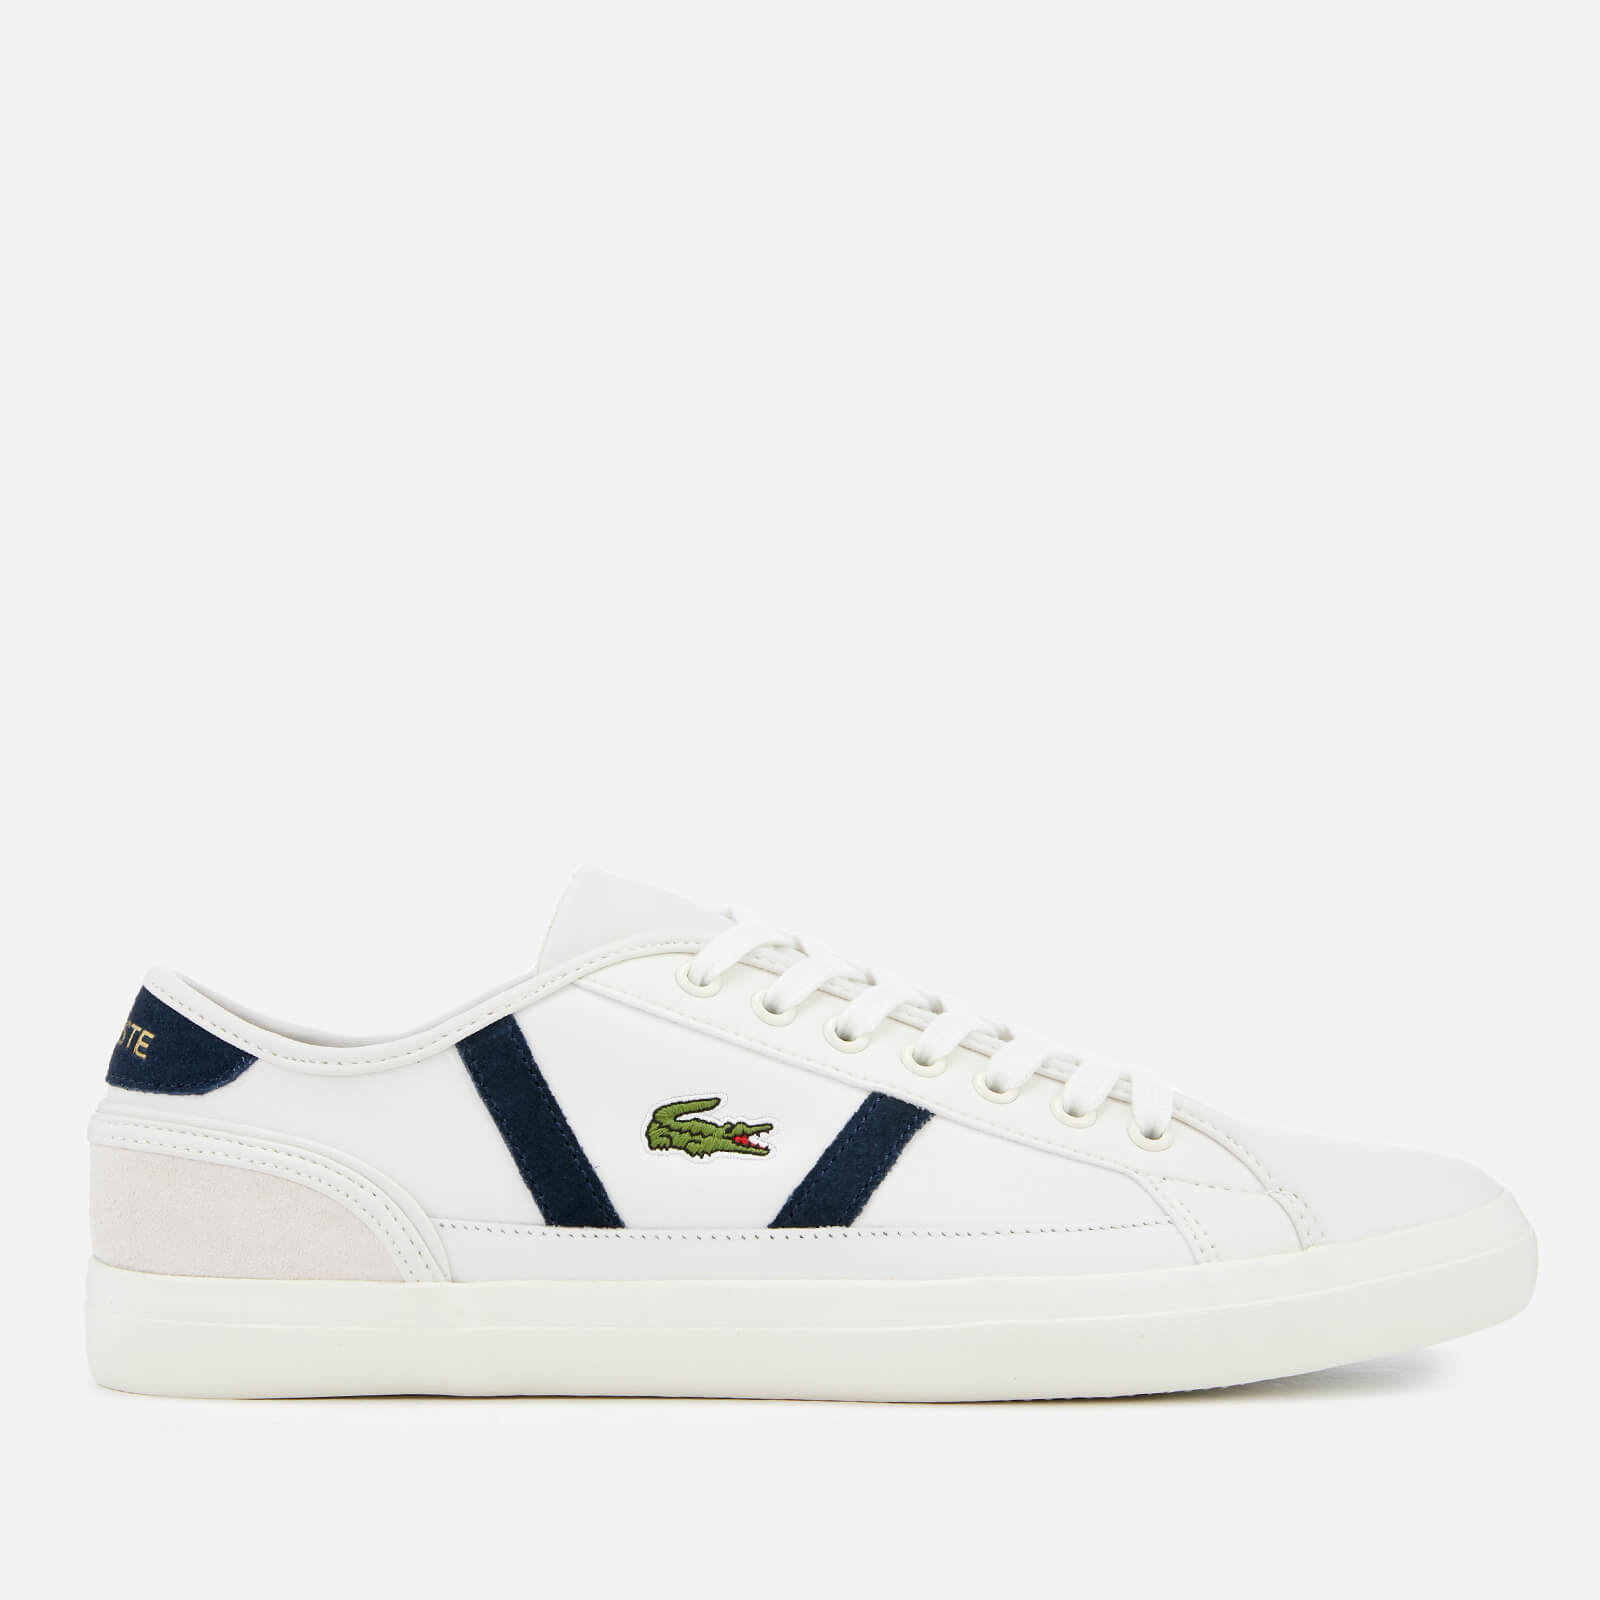 e0df61f88 Lacoste Men s Sideline 119 3 Leather Trainers - Off White Navy ...